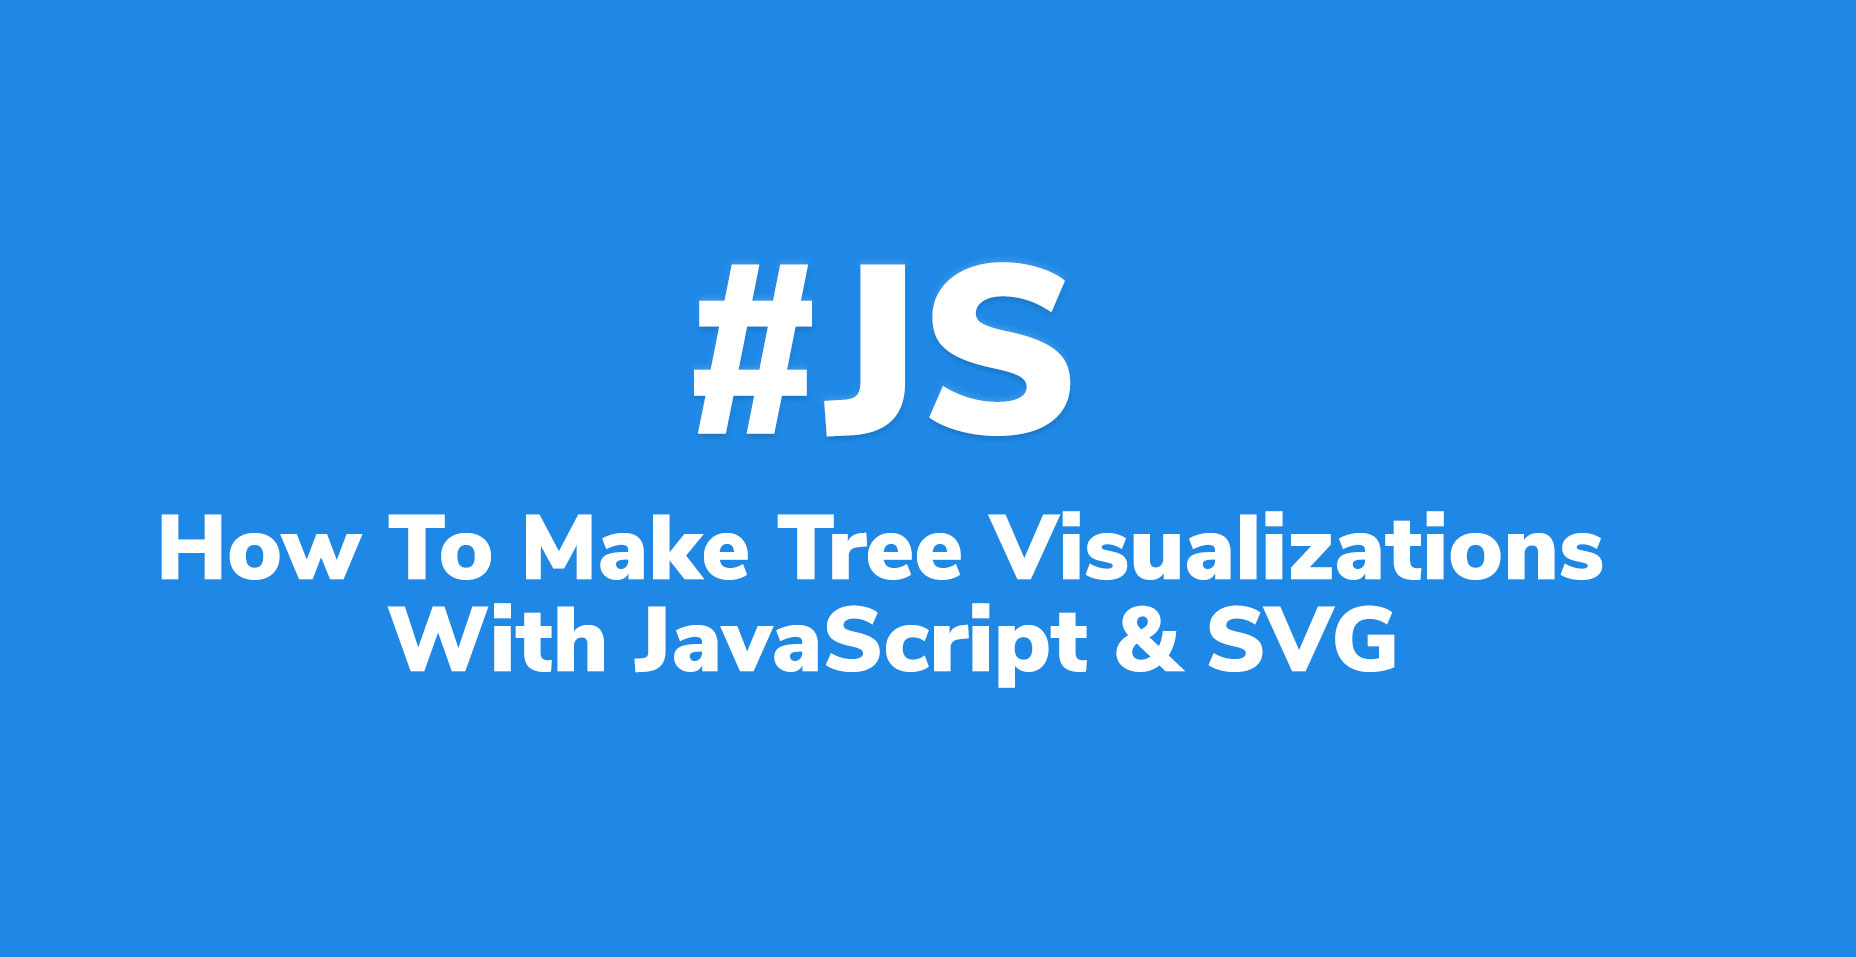 How To Make Tree Visualizations with JavaScript and SVG